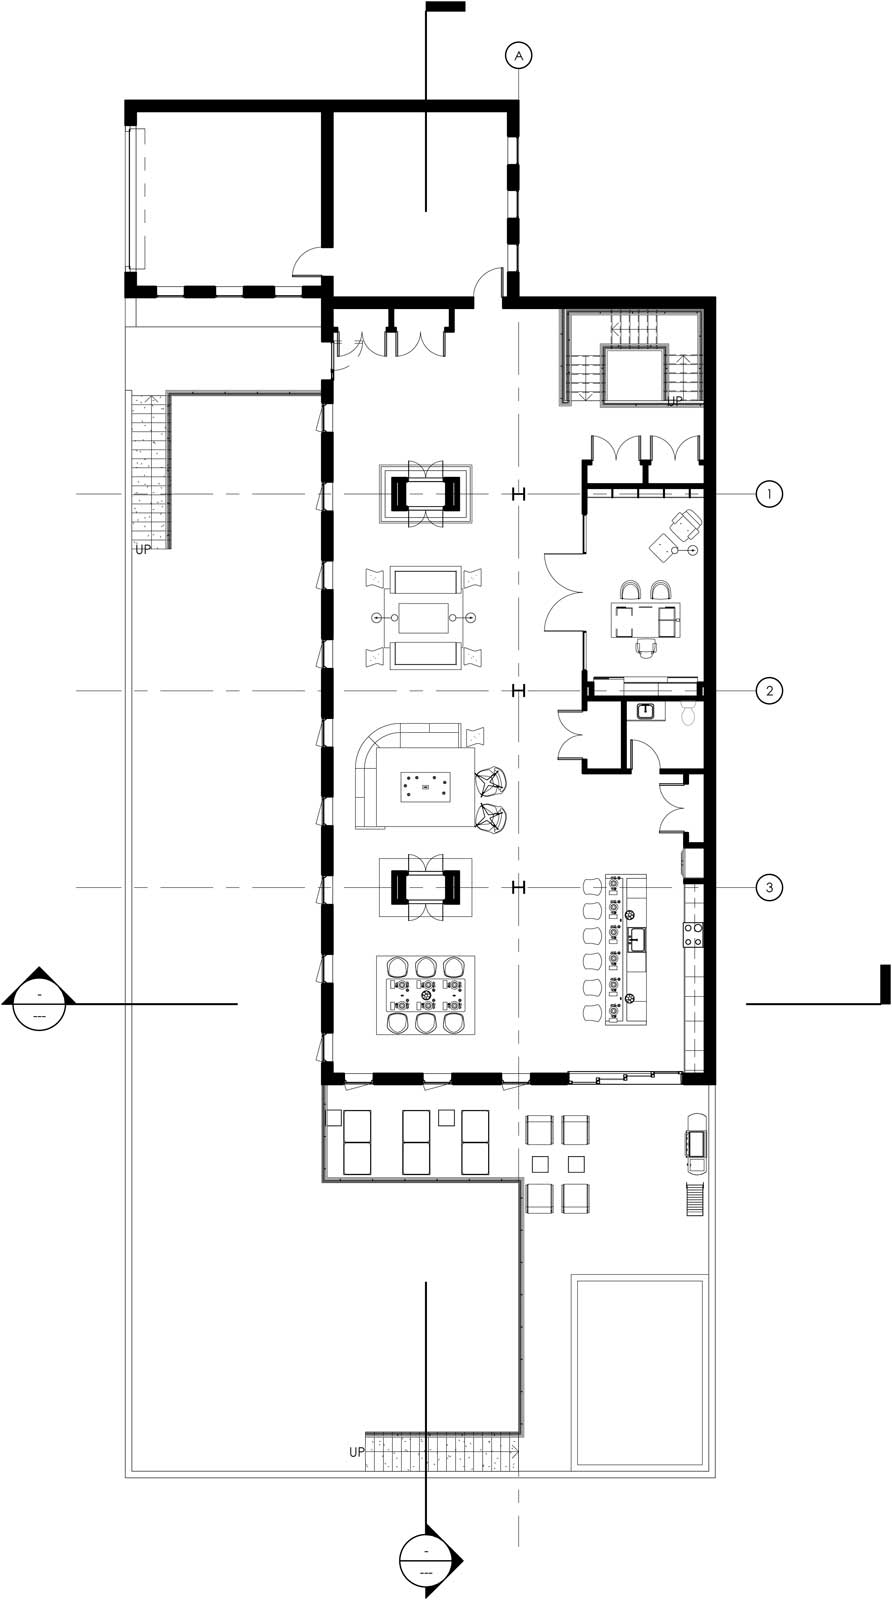 17x30-Ground-Floor-Plan.jpg